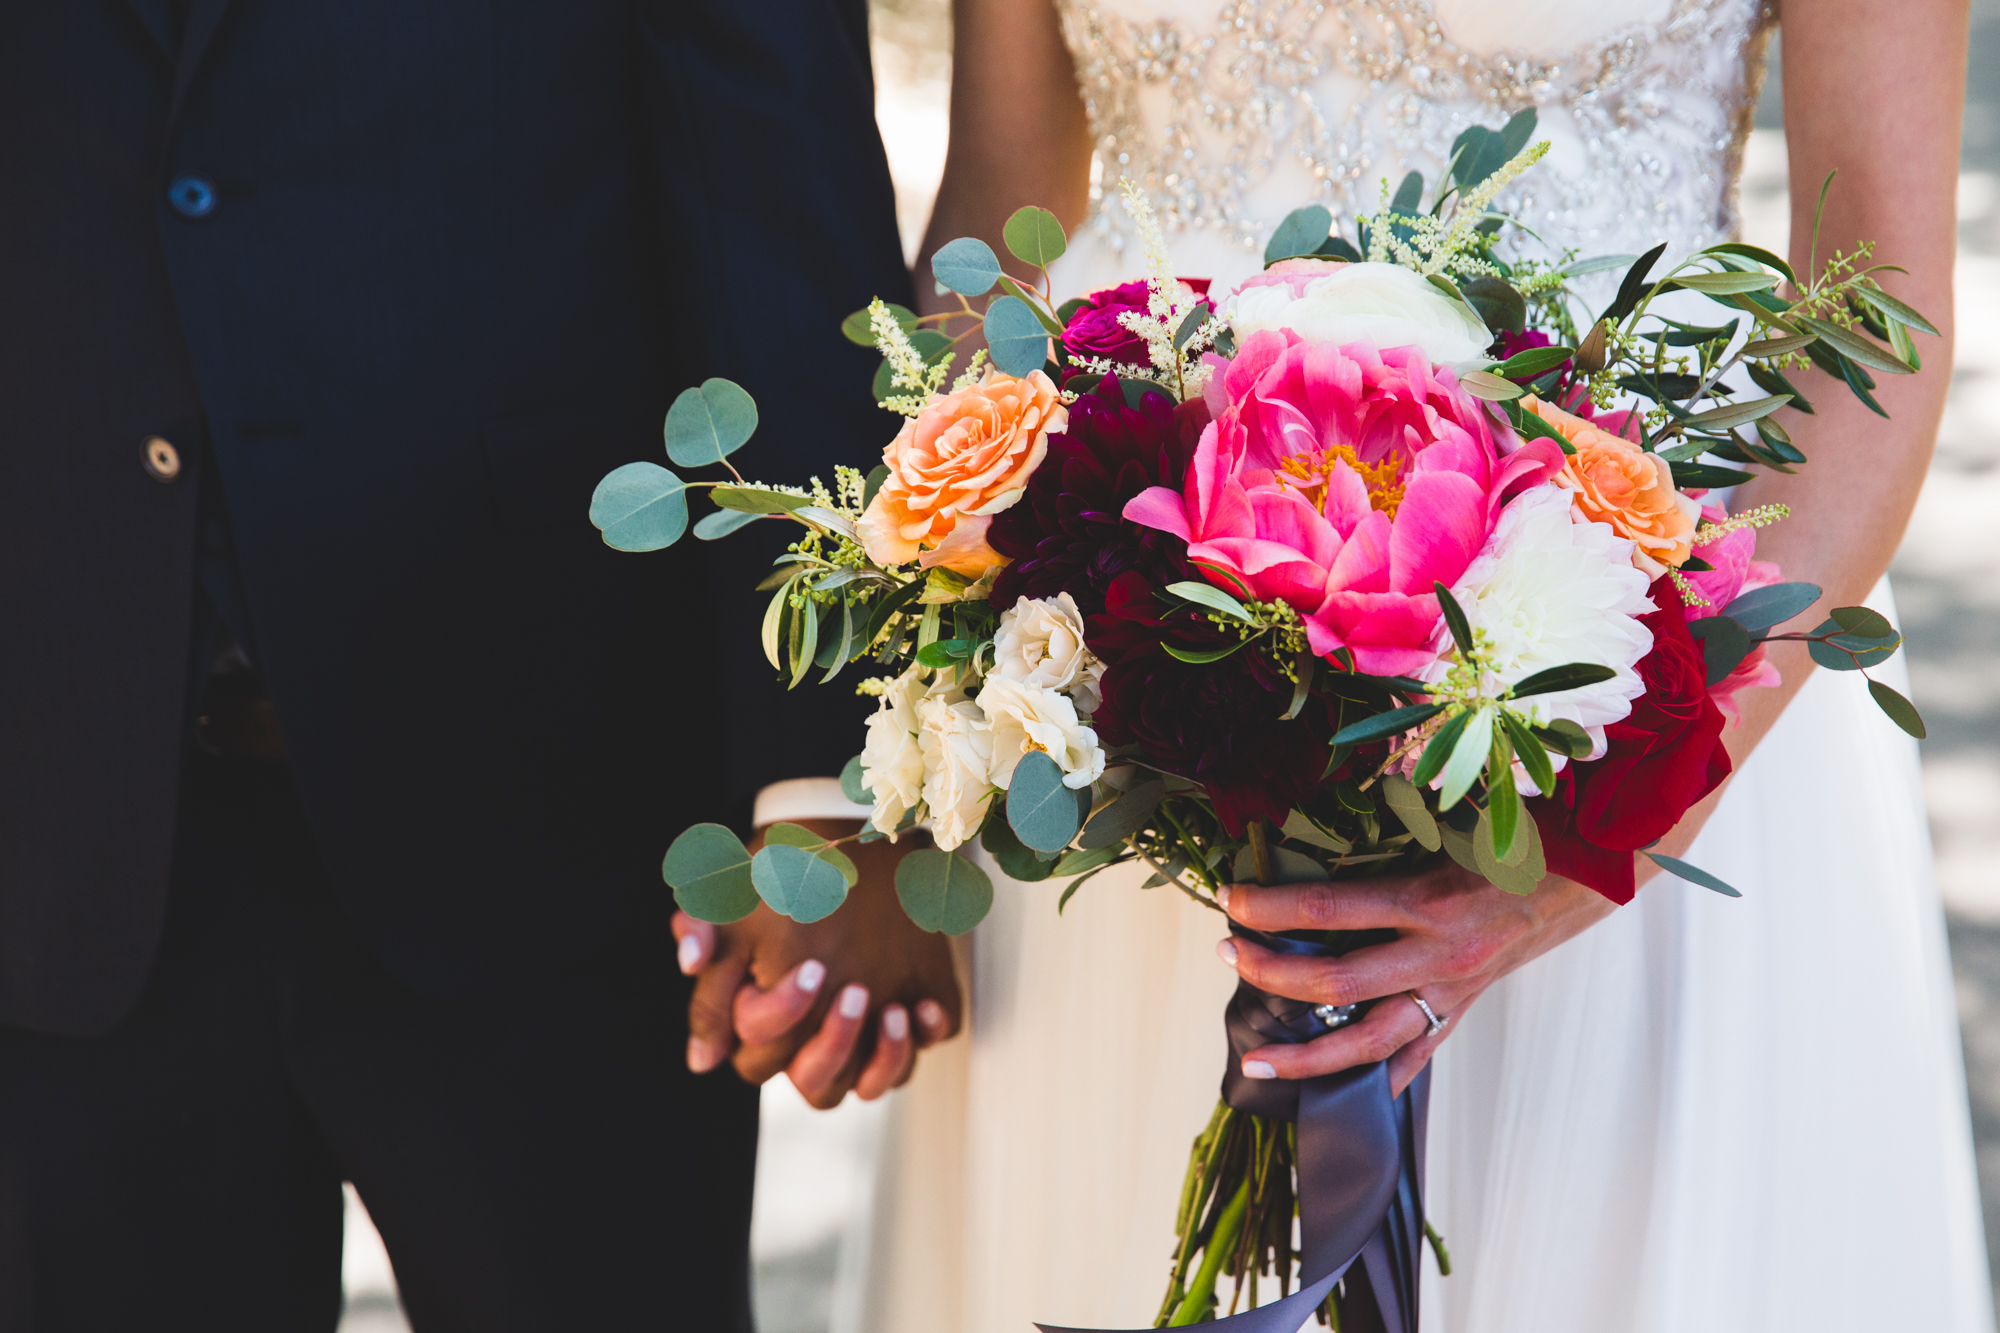 sd wedding-16.jpg